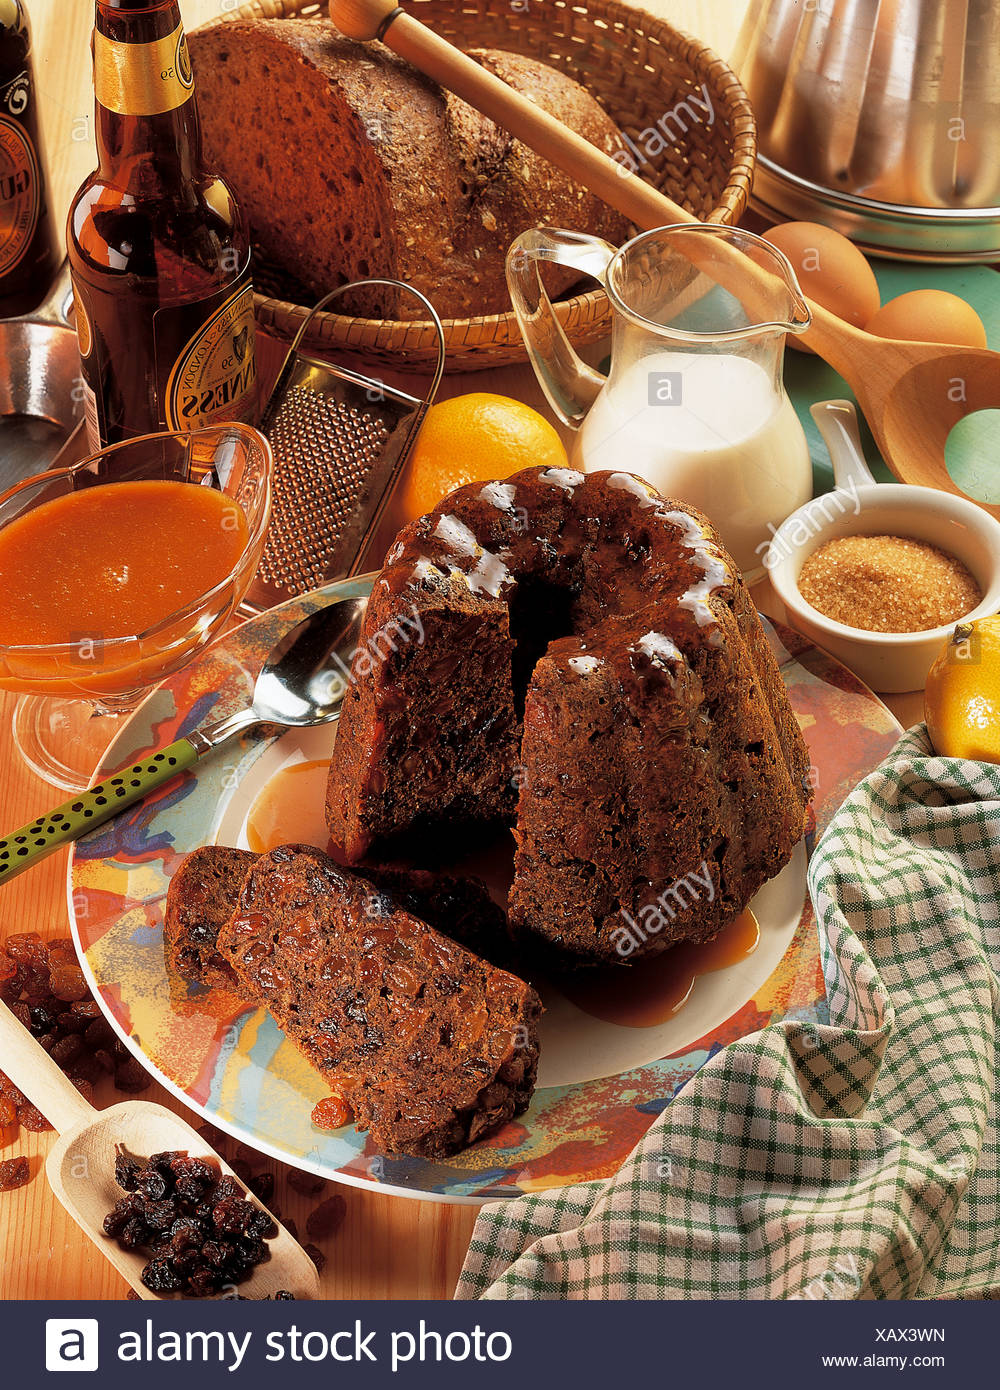 Beer pudding with raisins, Ireland, recipe available for a fee - Stock Image